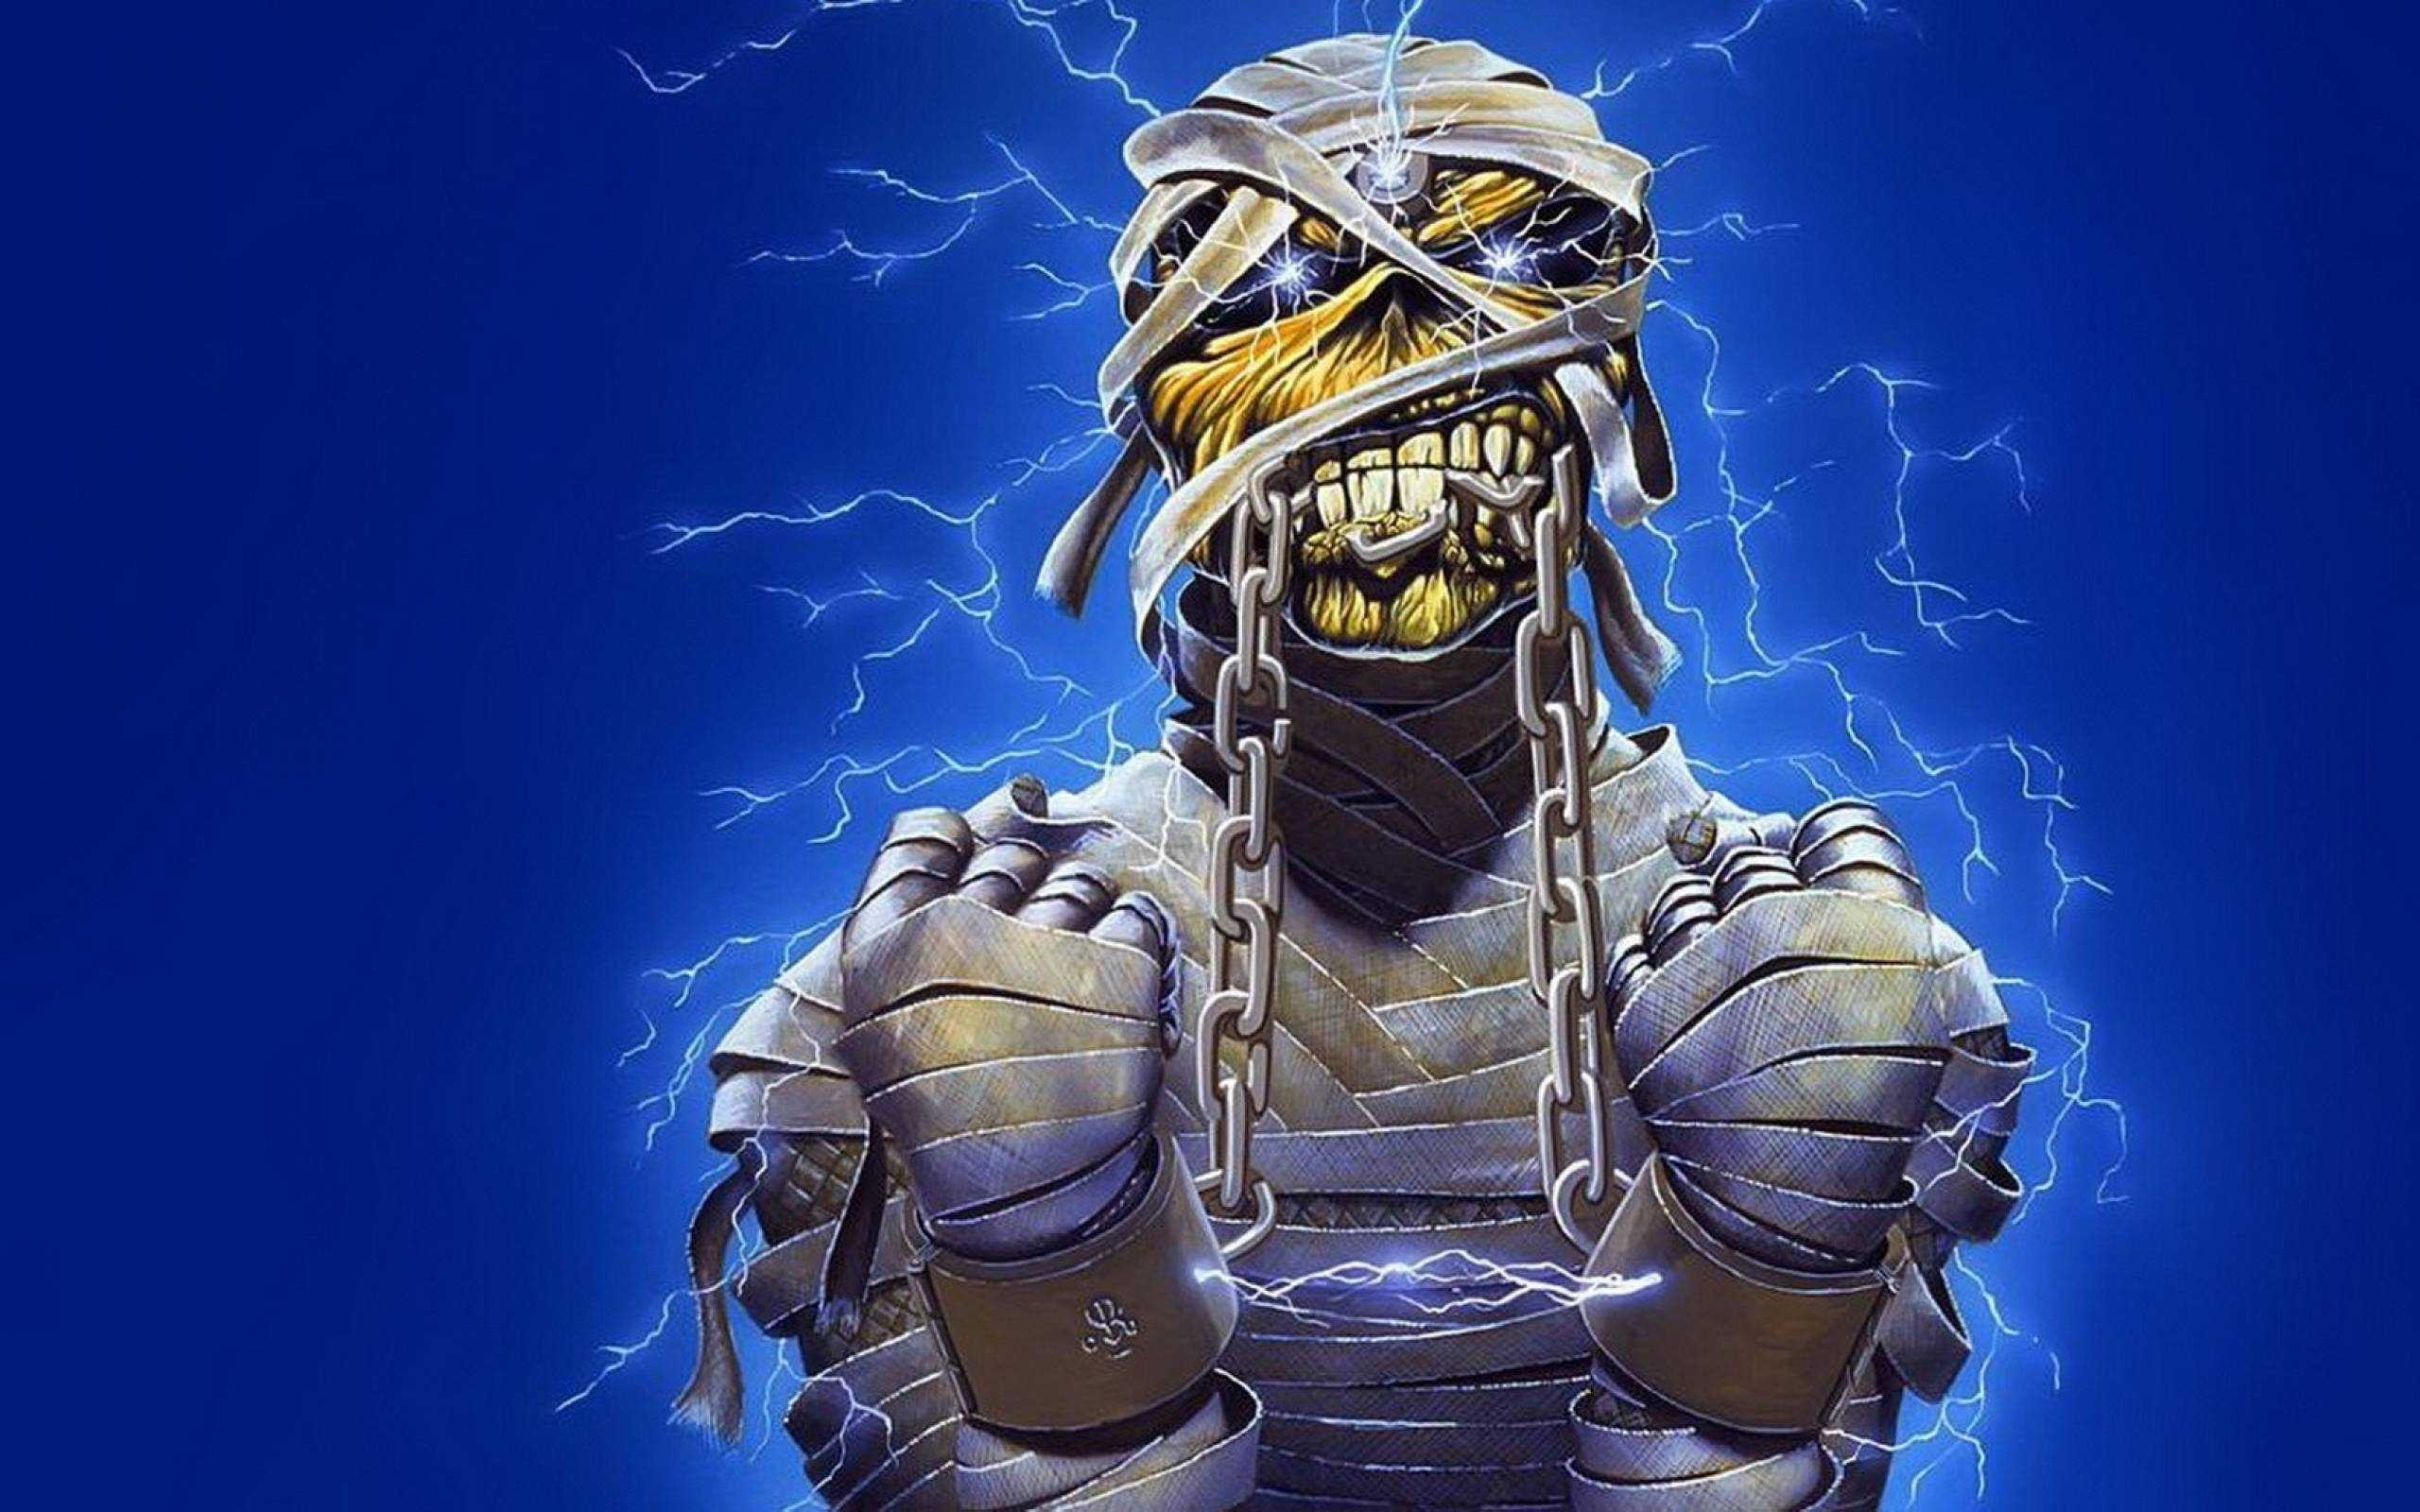 iron maiden wallpaper high quality resolution of mobile | wallvie